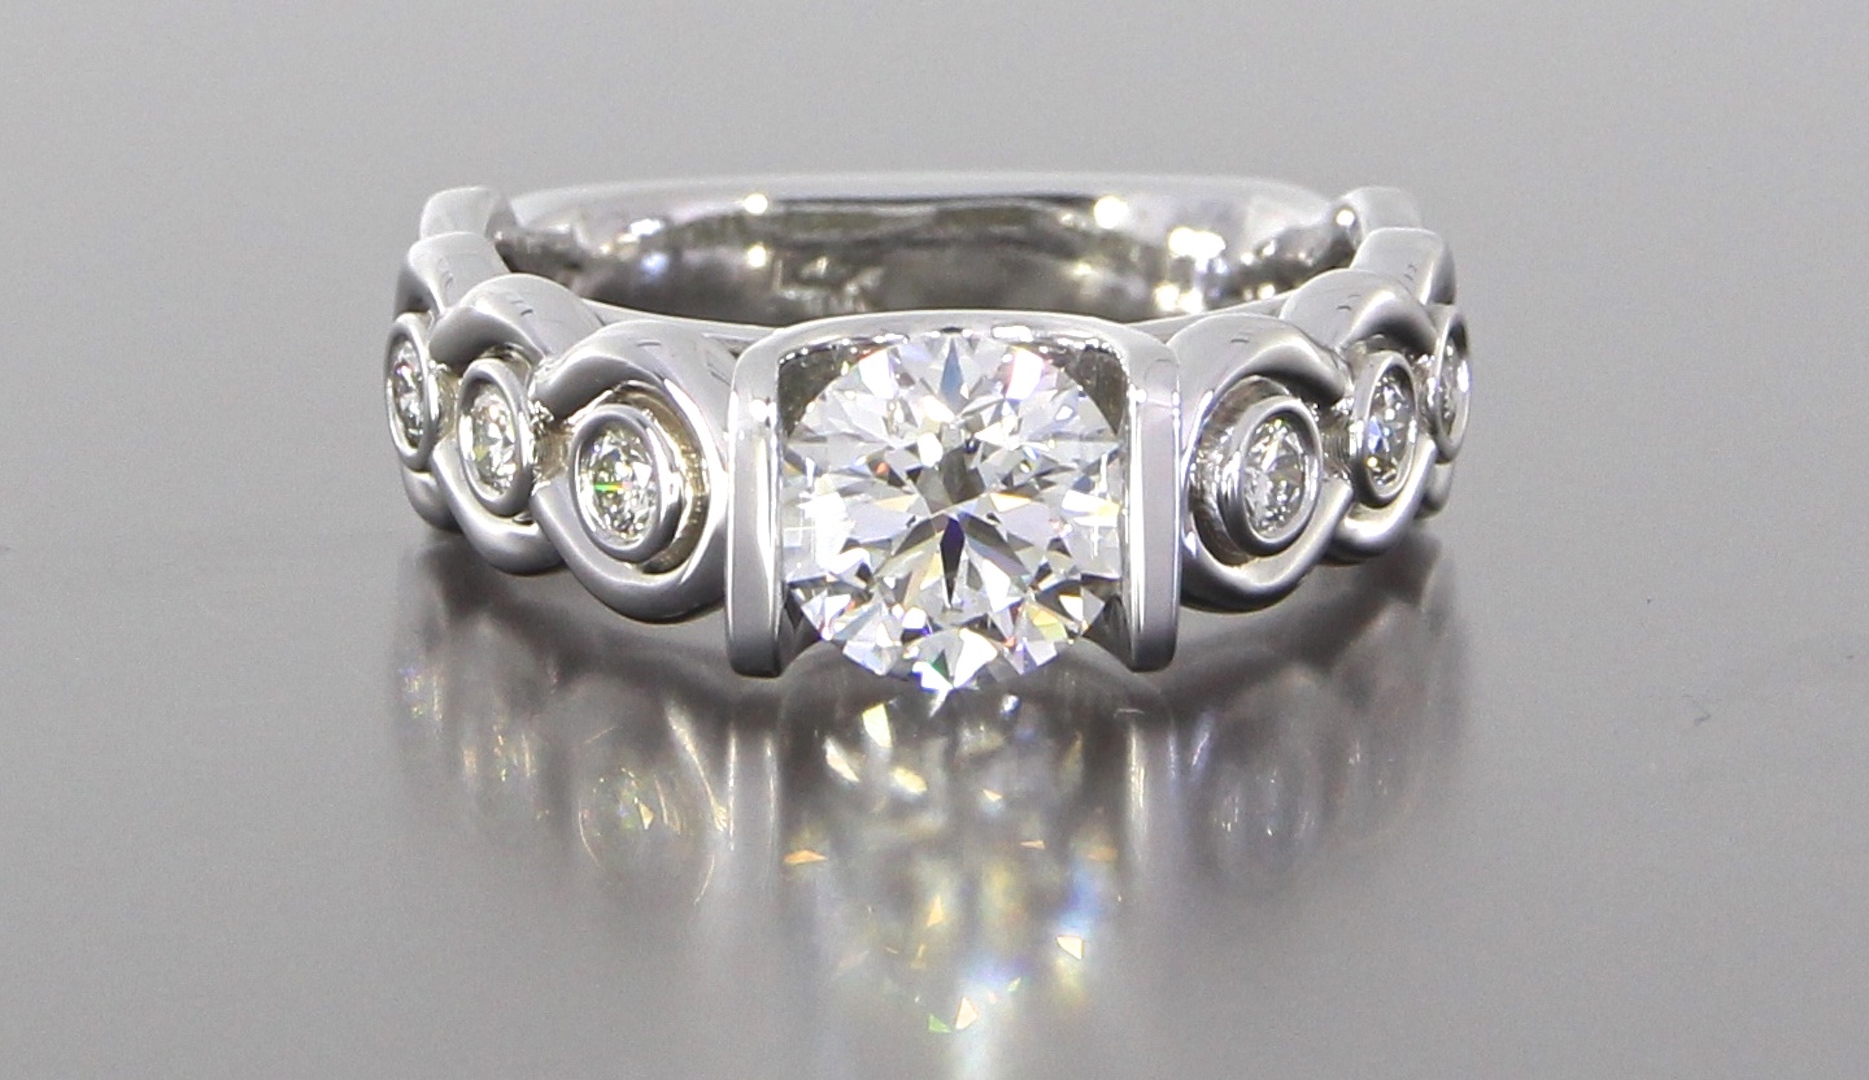 unique-round-diamond-modern-engagement-ring-craft-revival-jewelry-store-grand-rapids